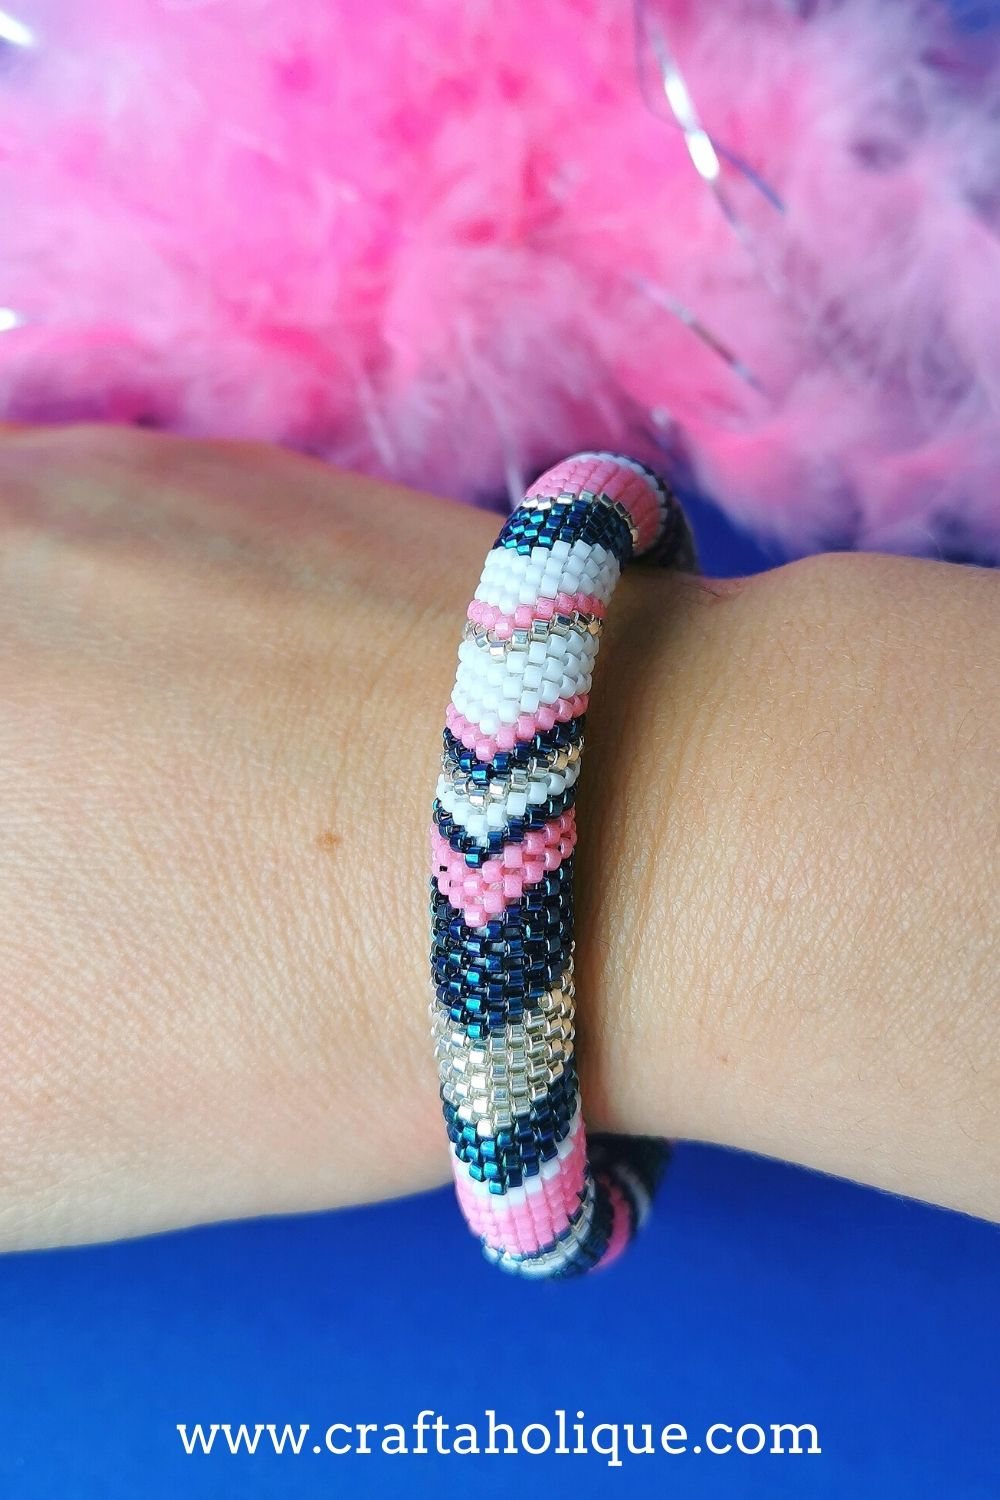 Even count tubular peyote bracelet pattern - makes a seamless beaded bangle